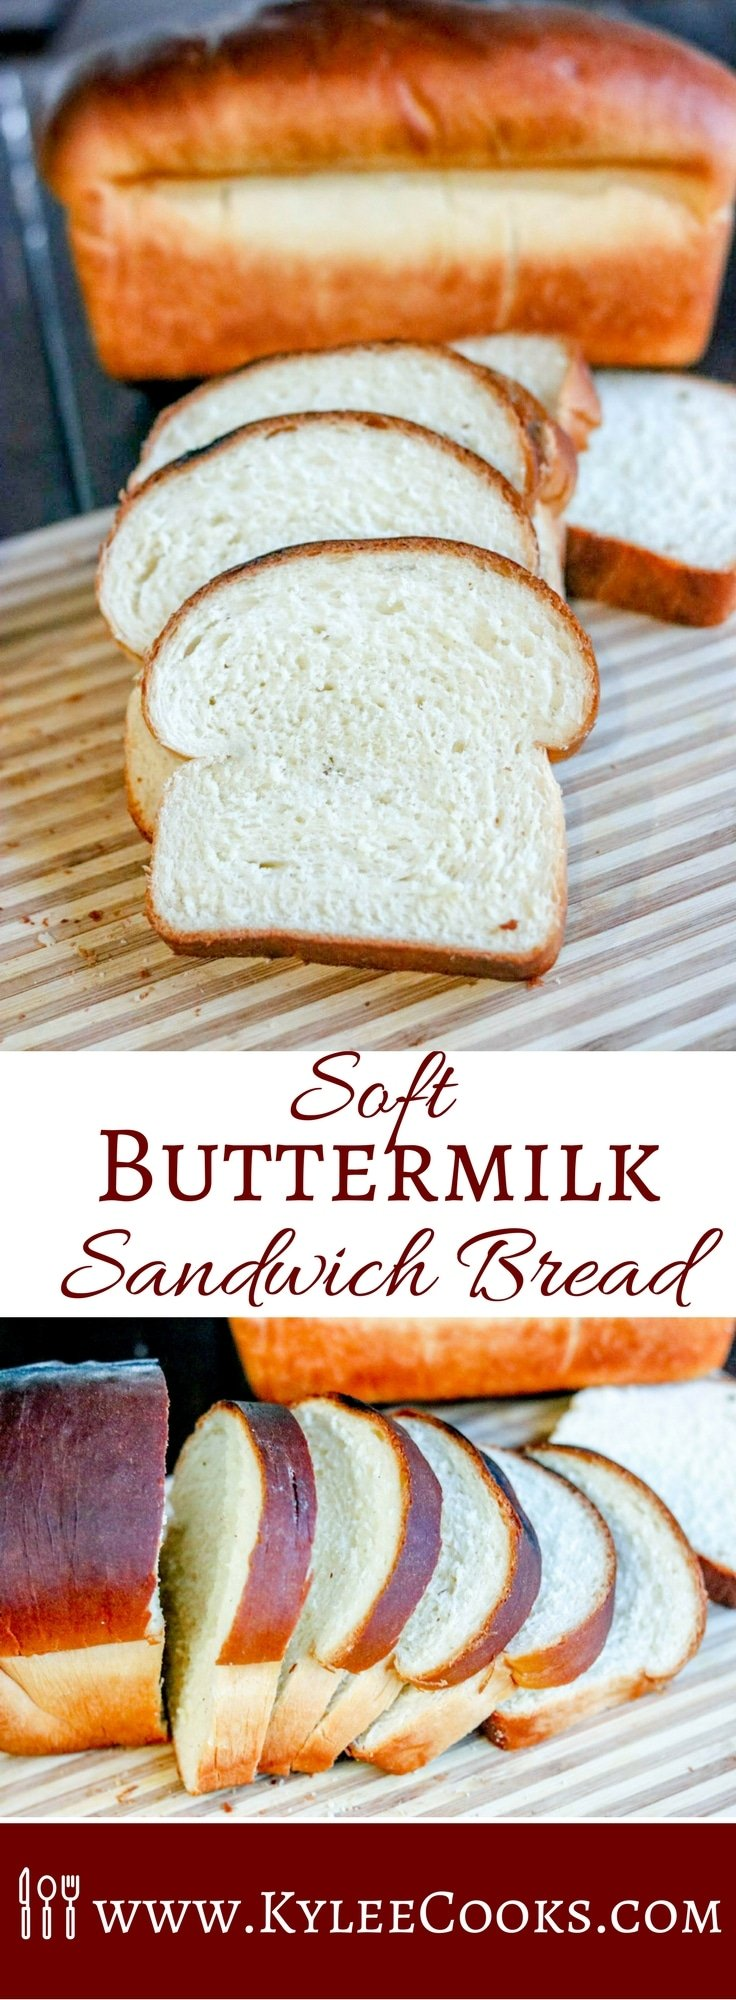 A beautifully soft homemade white sandwich bread, with a touch of extra flavor from buttermilk. This bread is fantastic for sandwiches, toasting, or right out of the oven.